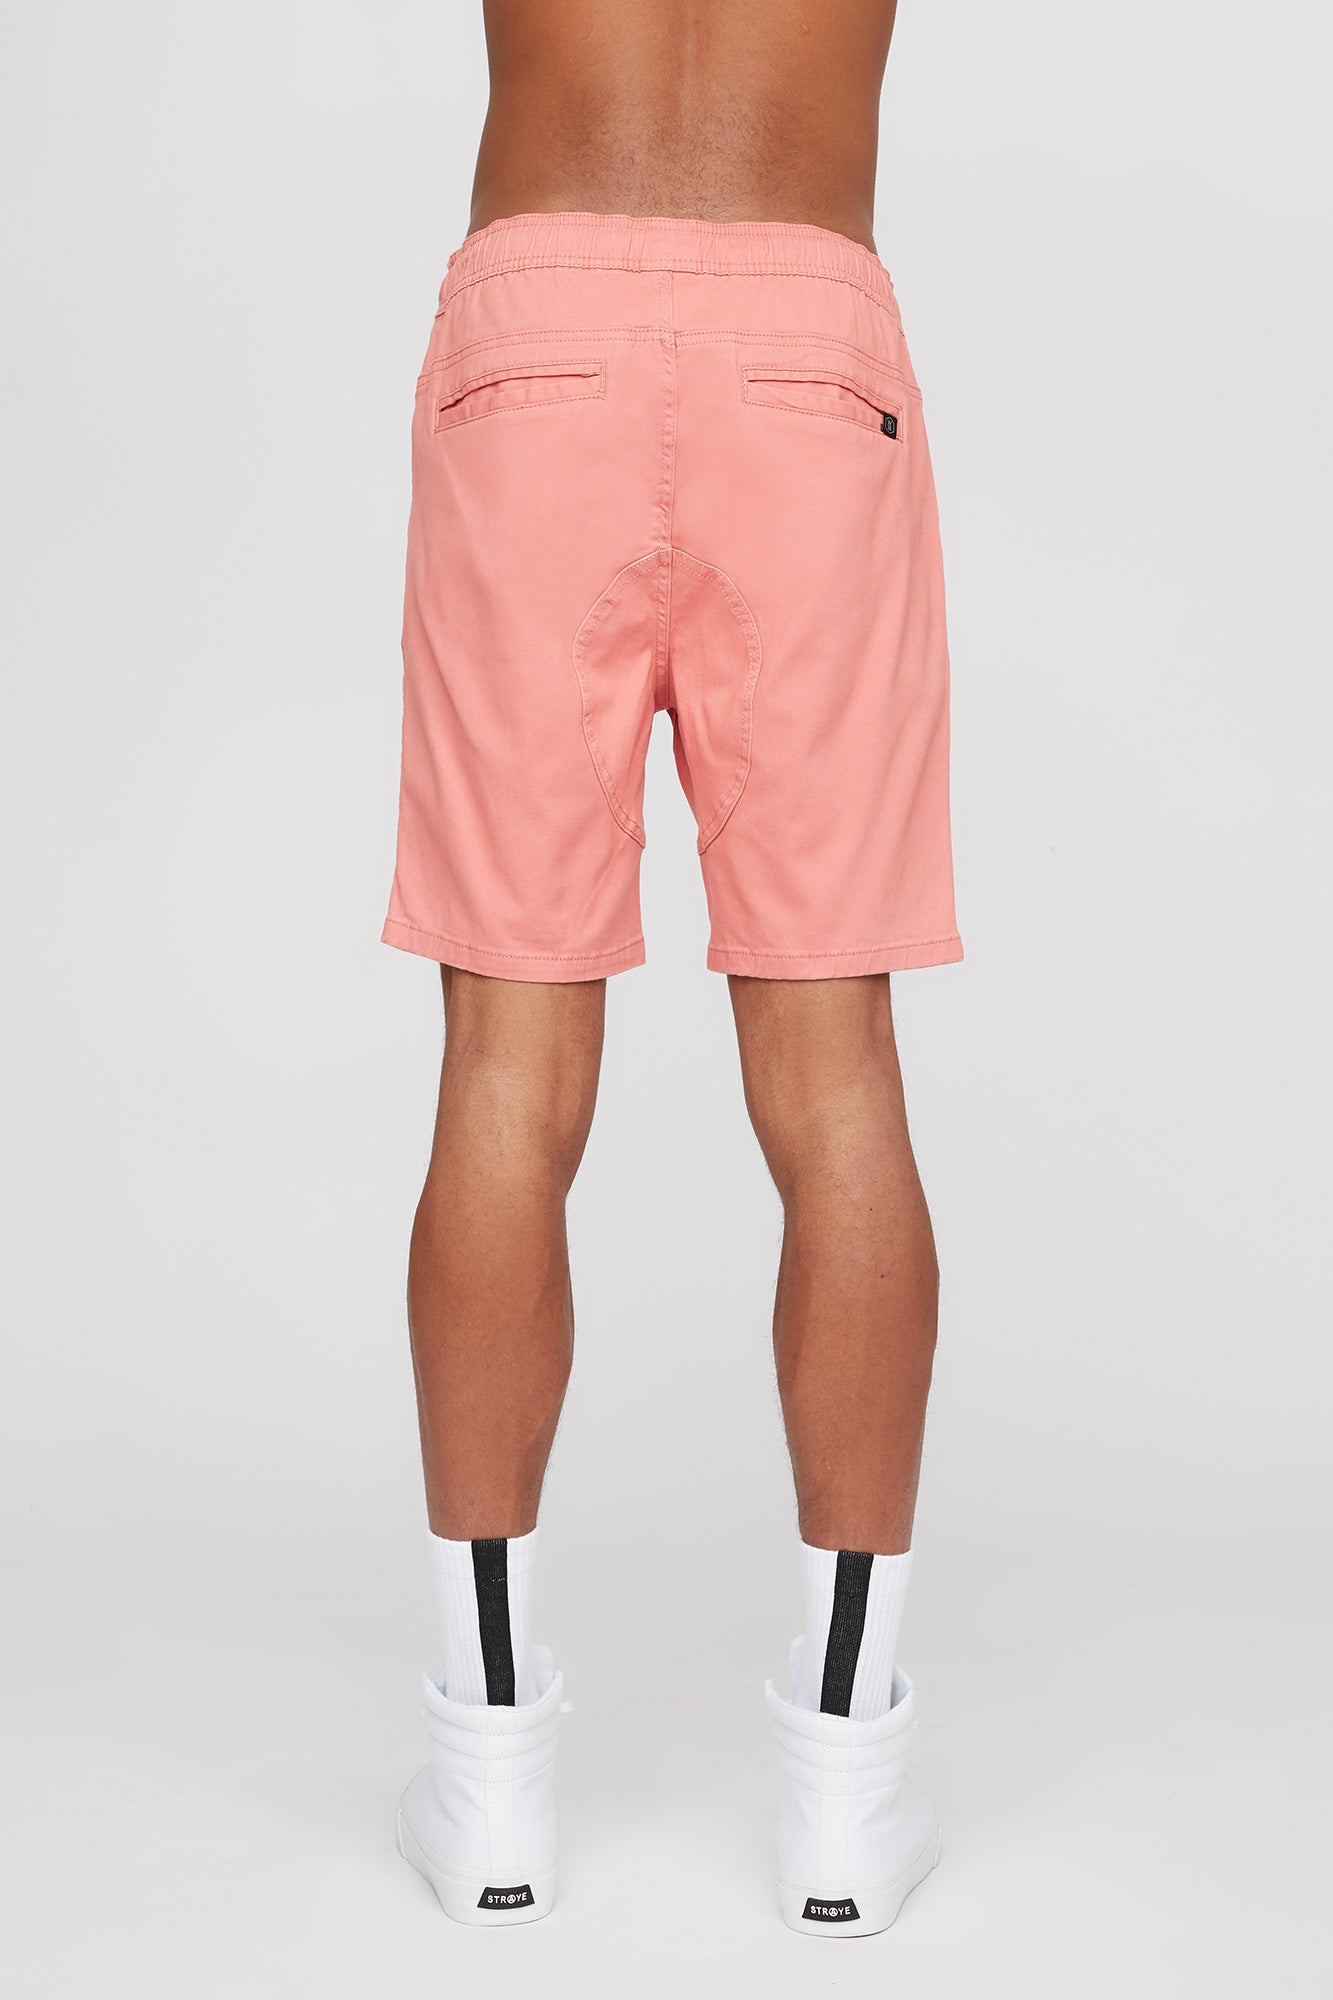 West 49 Guys Coral Rose Gusset Jogger